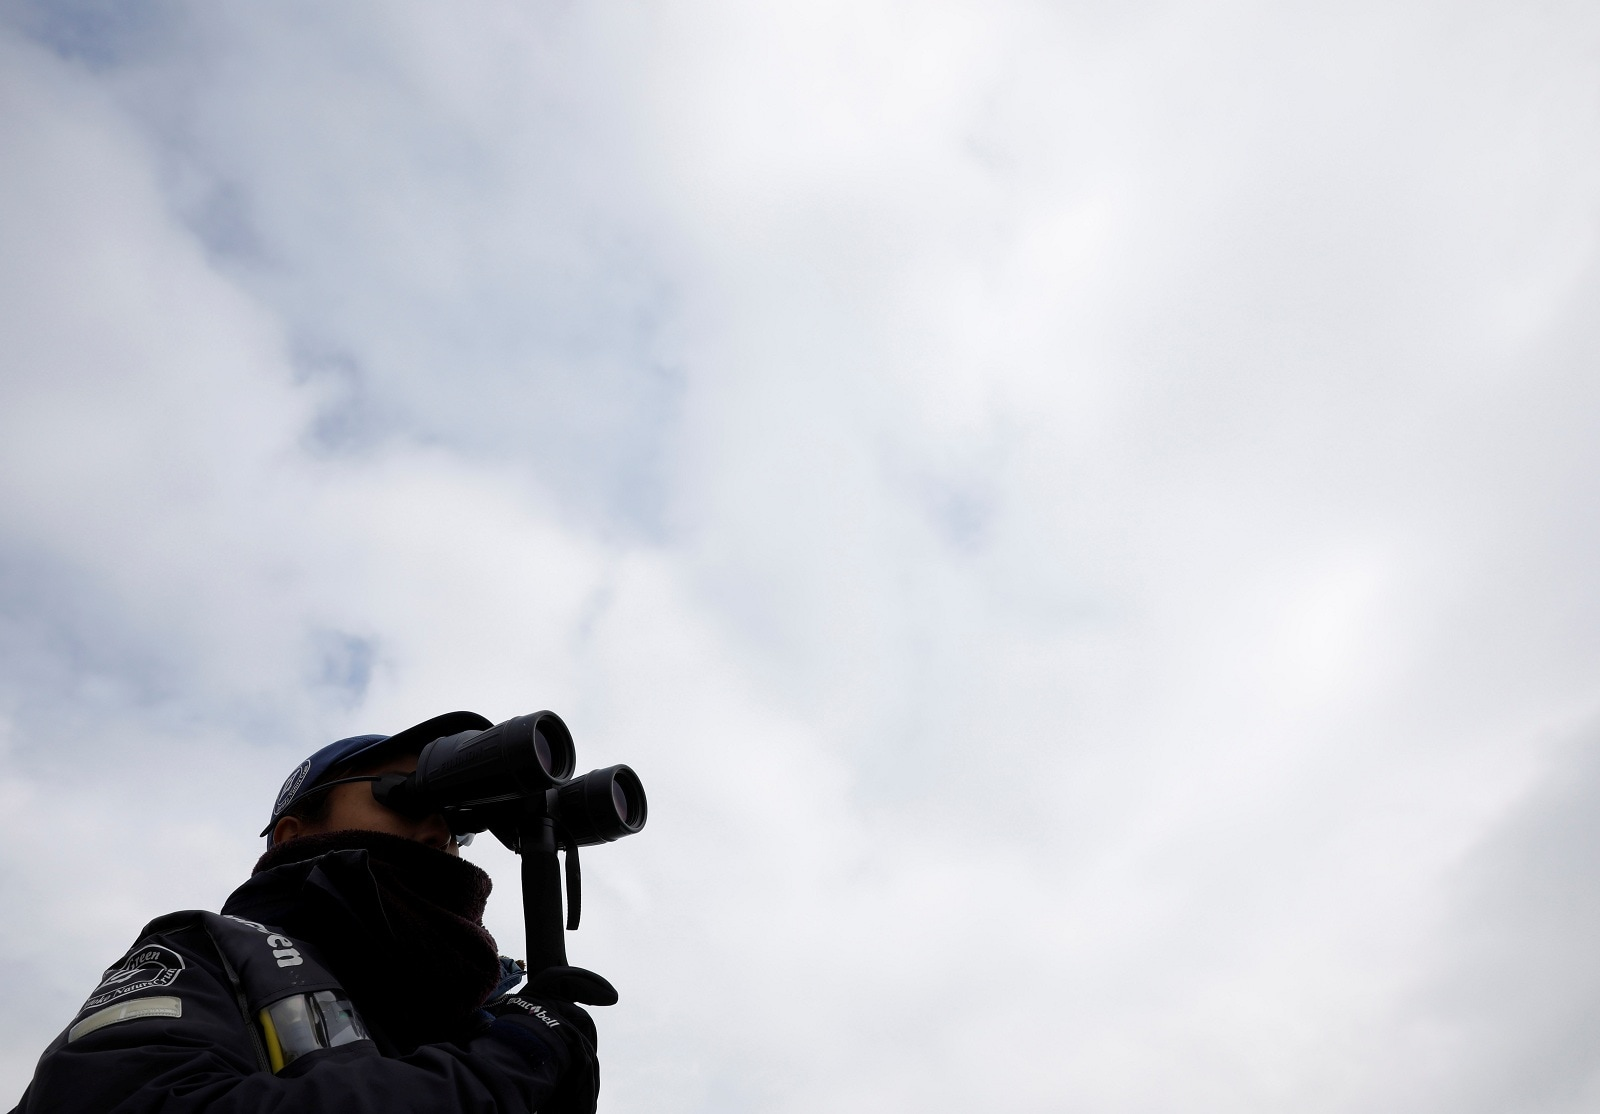 A staff on a whale watching tour boat looks for whales with binoculars in the sea near Rausu, Hokkaido, Japan, July 1, 2019. REUTERS/Kim Kyung-Hoon